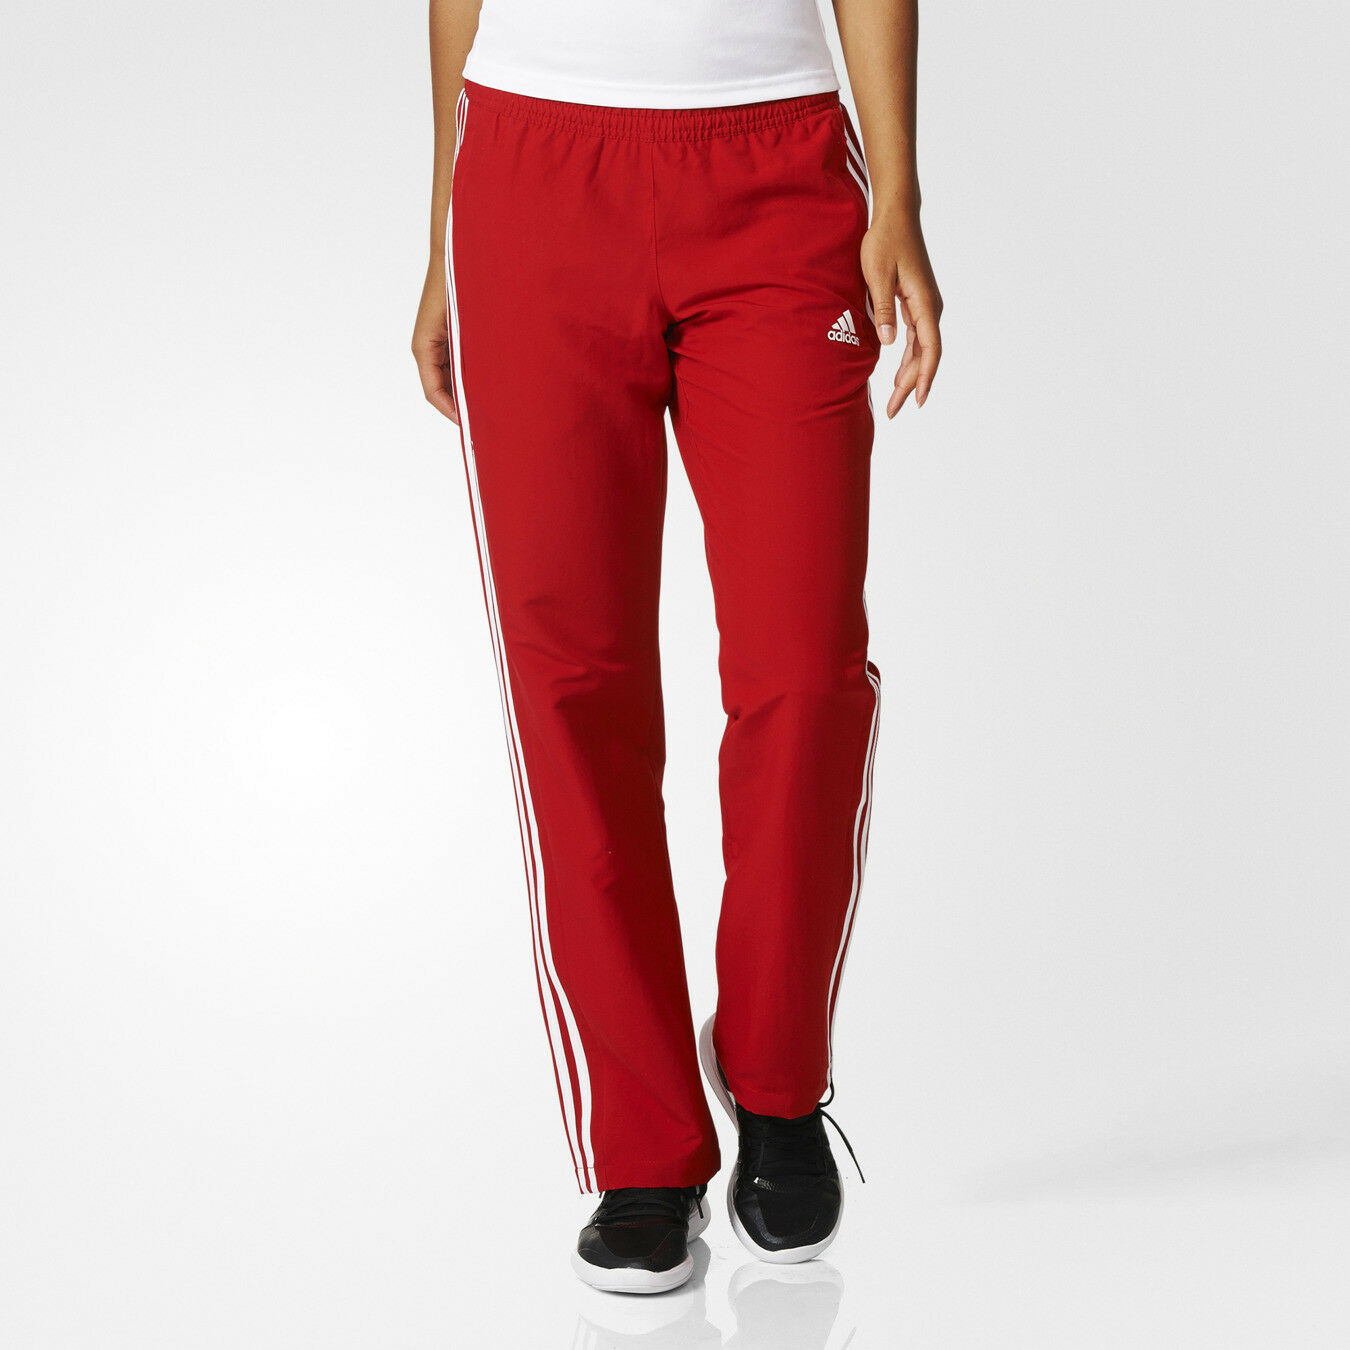 Details about adidas Team T16 Women's Tracksuit Trousers Running Gym Sports Track Pants